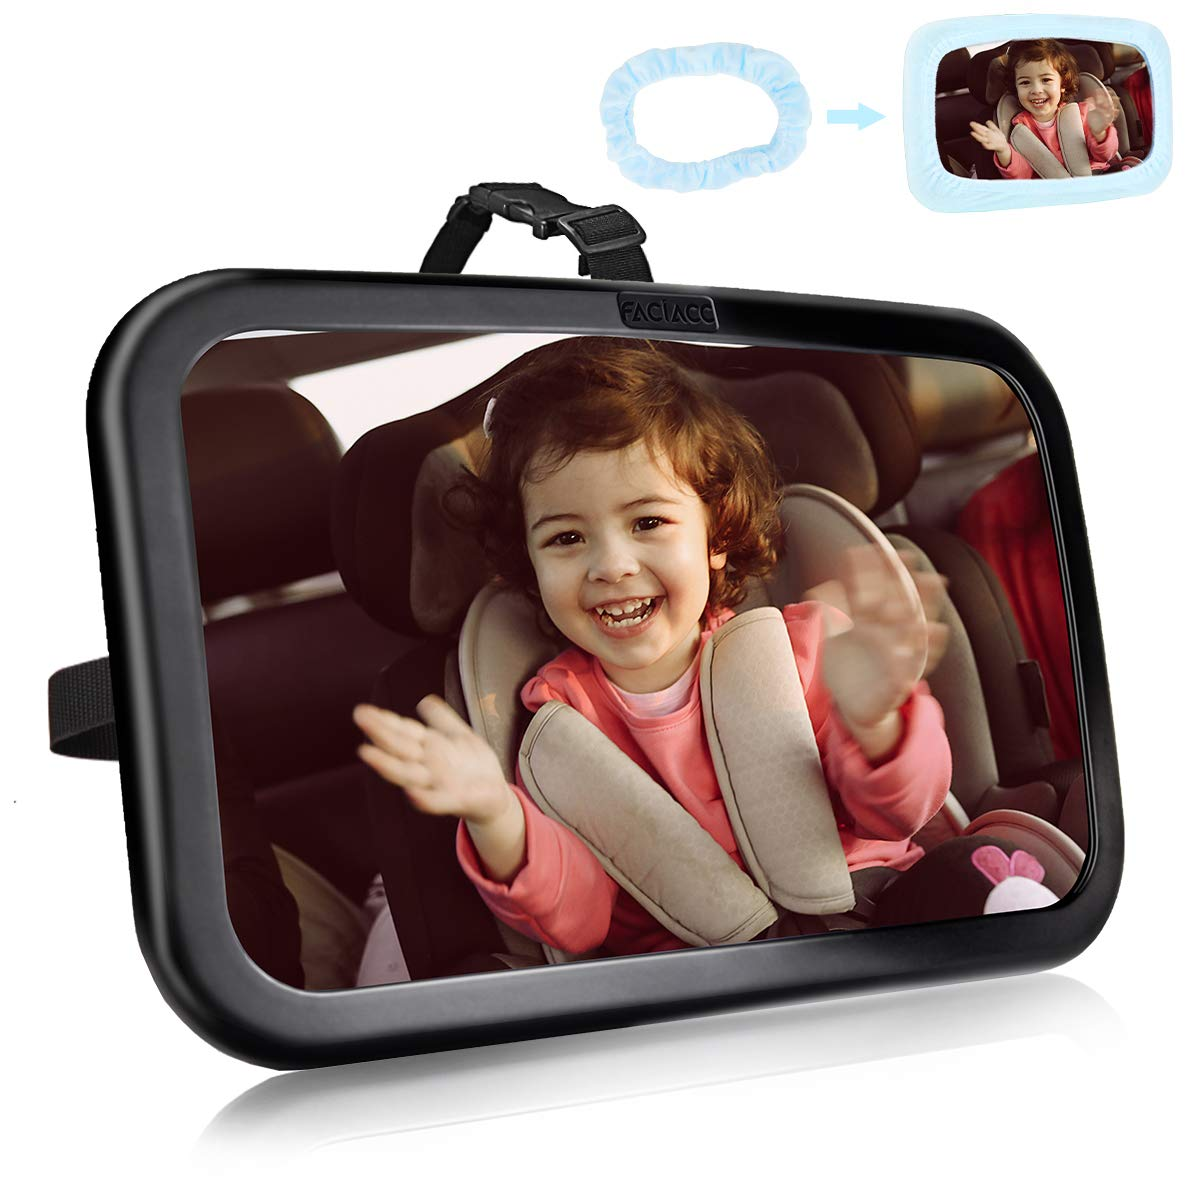 FACIACC Baby Car Mirrors for back seat, 360° Rotation Rear View Car Seat Mirror Safest Shatterproof Infant Mirror to See Rear Facing Infants, Kids and Child (Black+Blue)